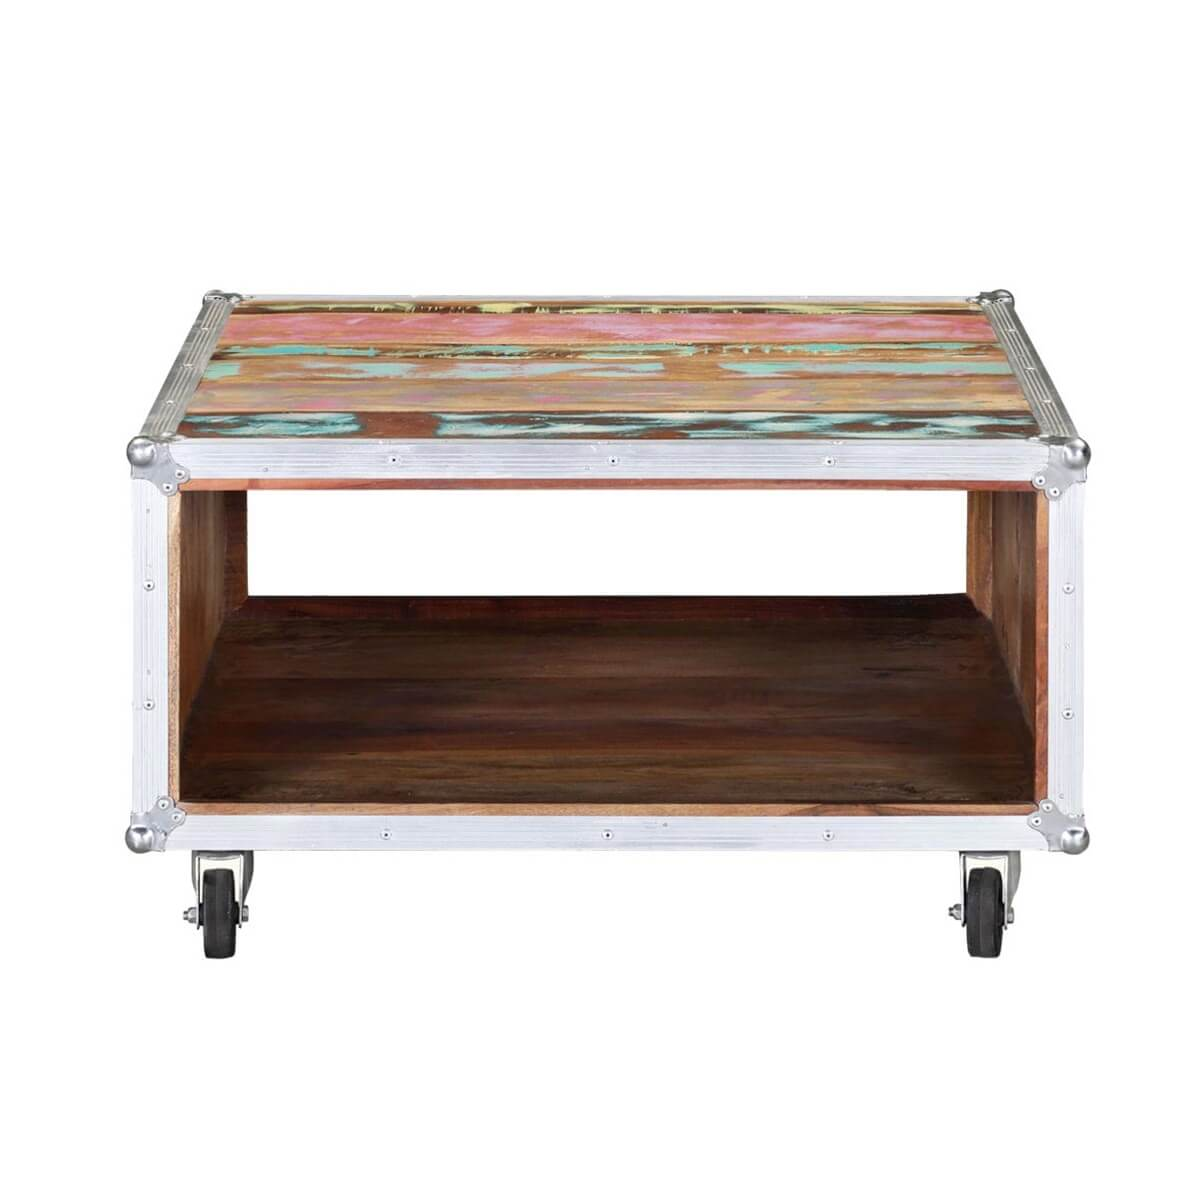 Rainbow Handcrafted Reclaimed Wood Industrial Coffee Table